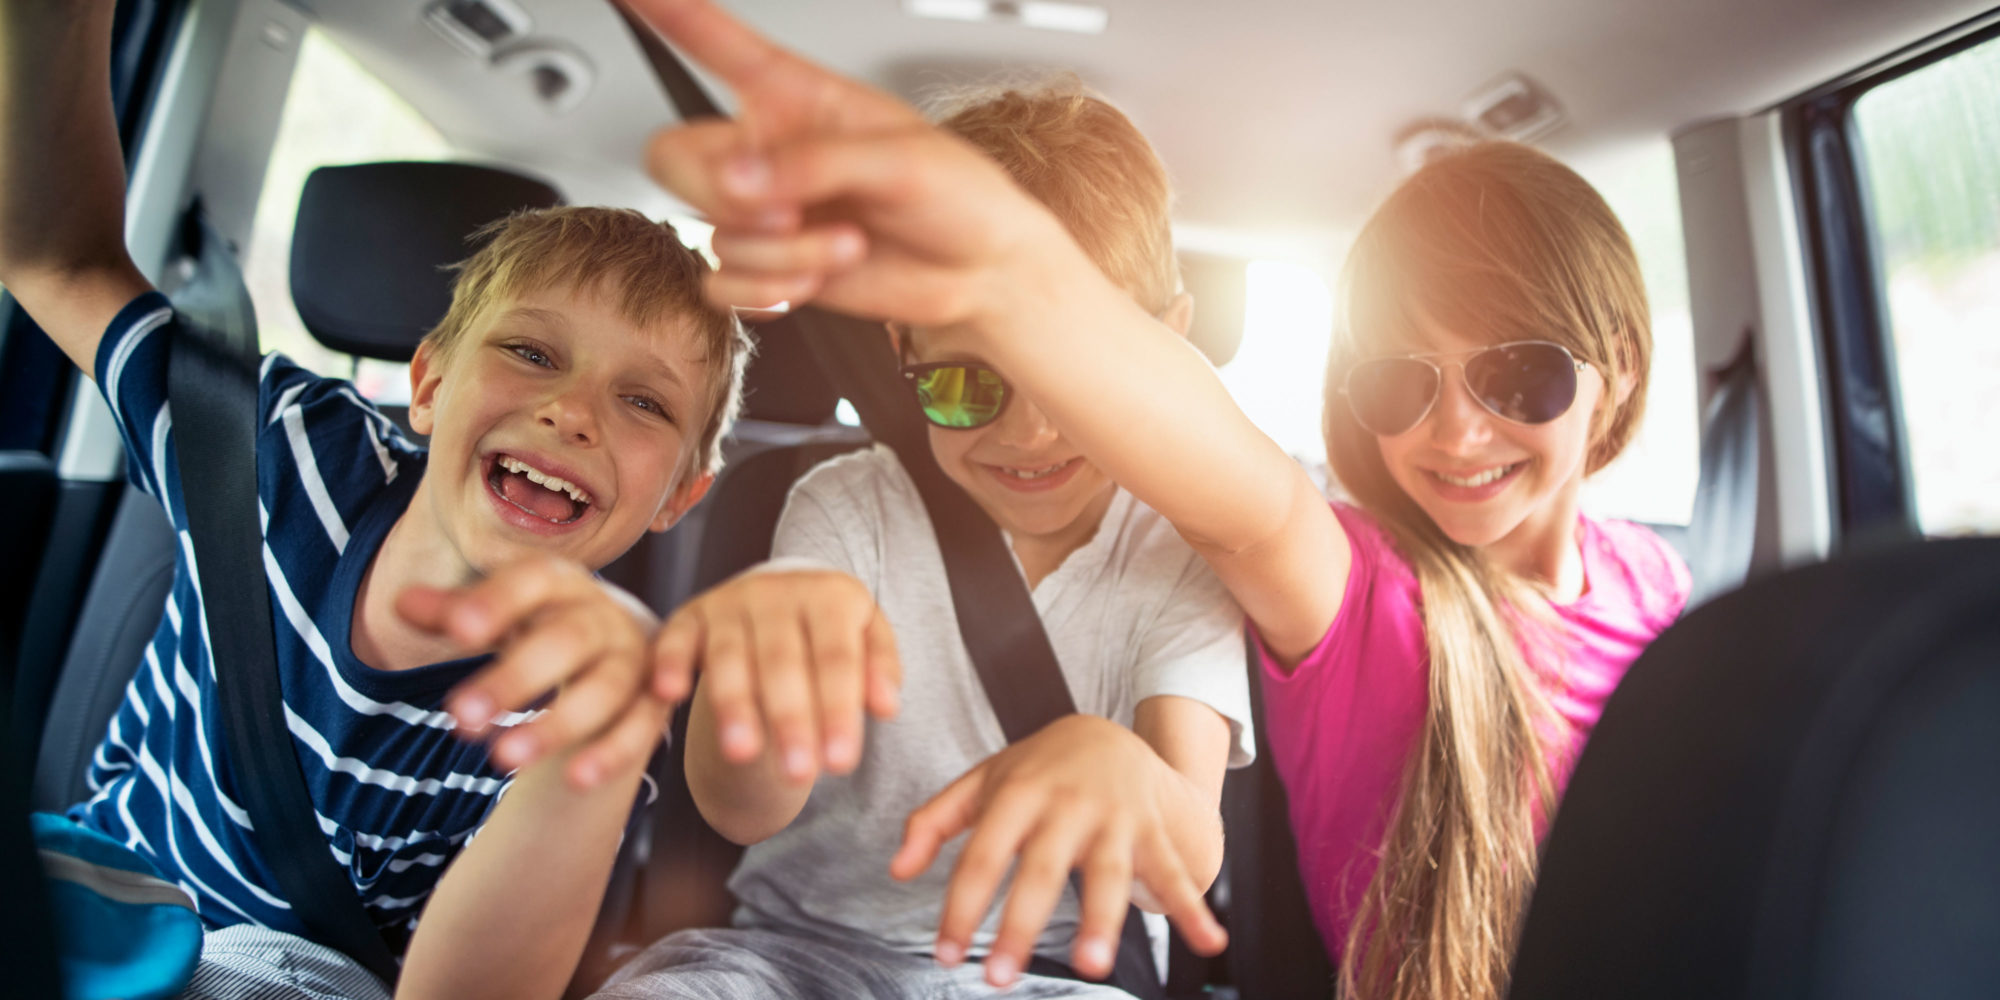 How to make your car trip fun! Photo: Imgorthand / GettyImages.